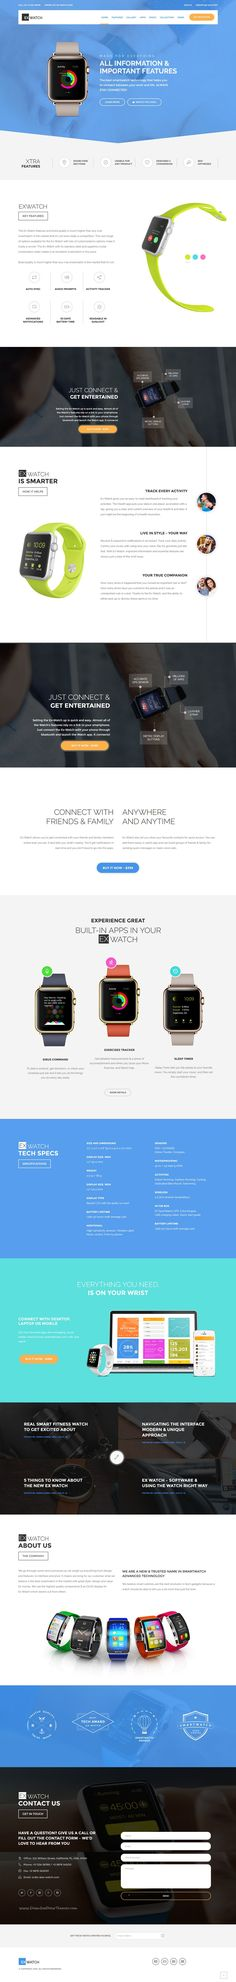 Ex Watch is a Modern & Responsive #Shopify Template for a single #product showcase or multiple products #eCommerce website download now➯ https://themeforest.net/item/ex-watch-single-product-ecommerce-shopify-theme/17260709?ref=Datasata